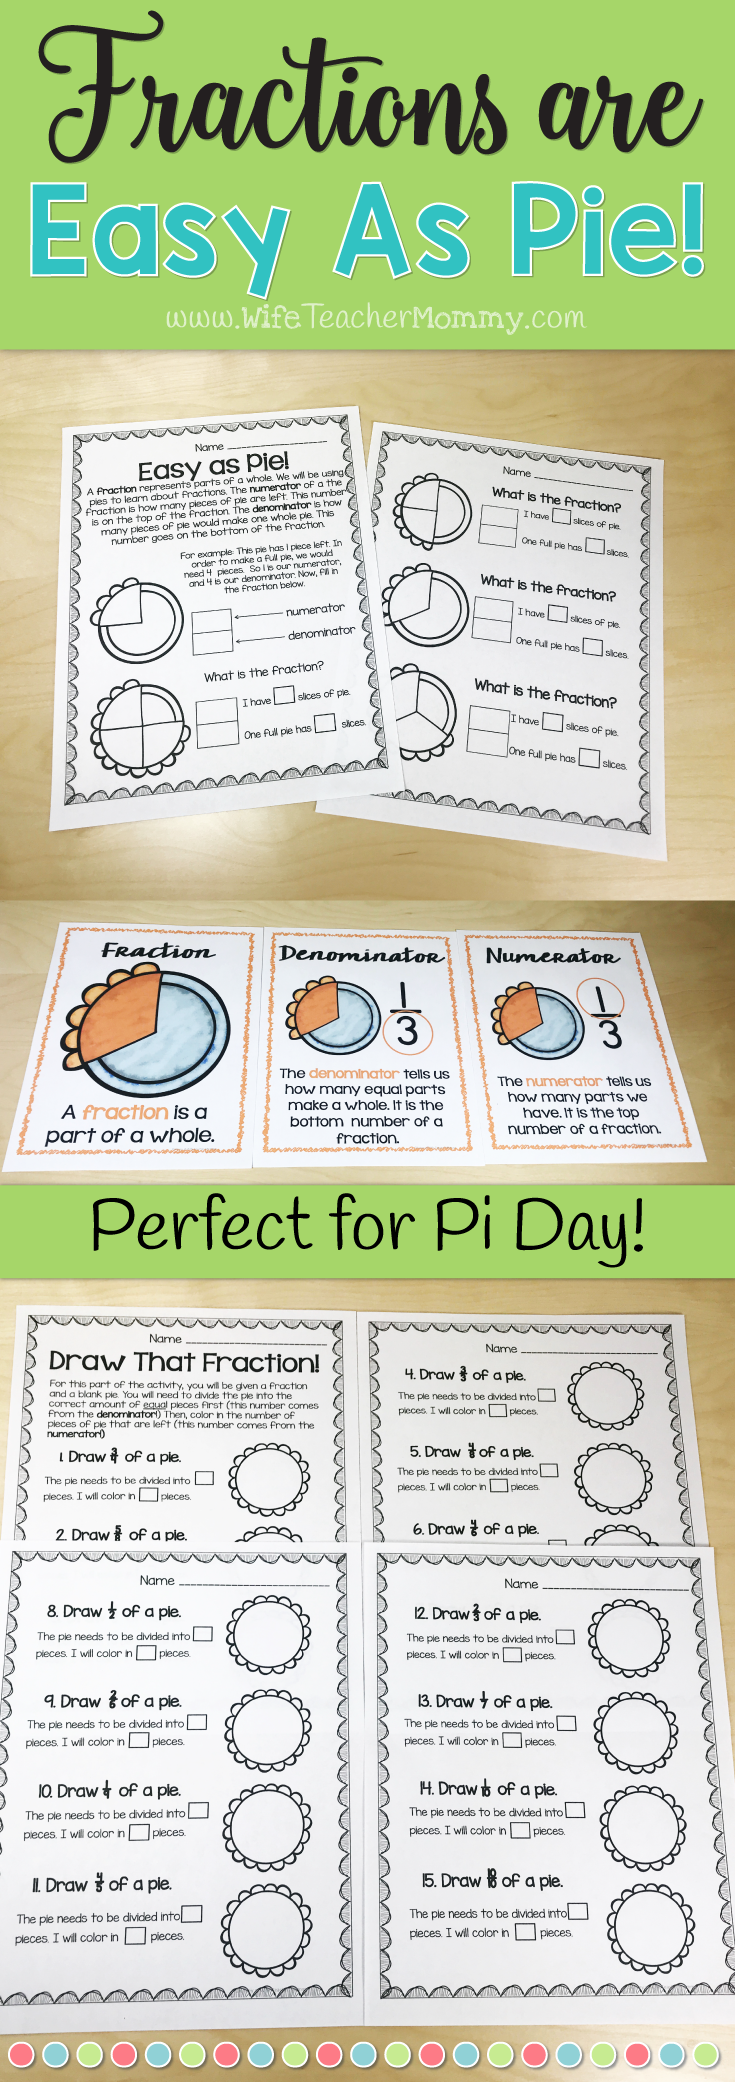 Thanksgiving Fractions Worksheets Posters And Activities Fractions Worksheets 4th Grade Math Worksheets Fractions [ 2082 x 735 Pixel ]